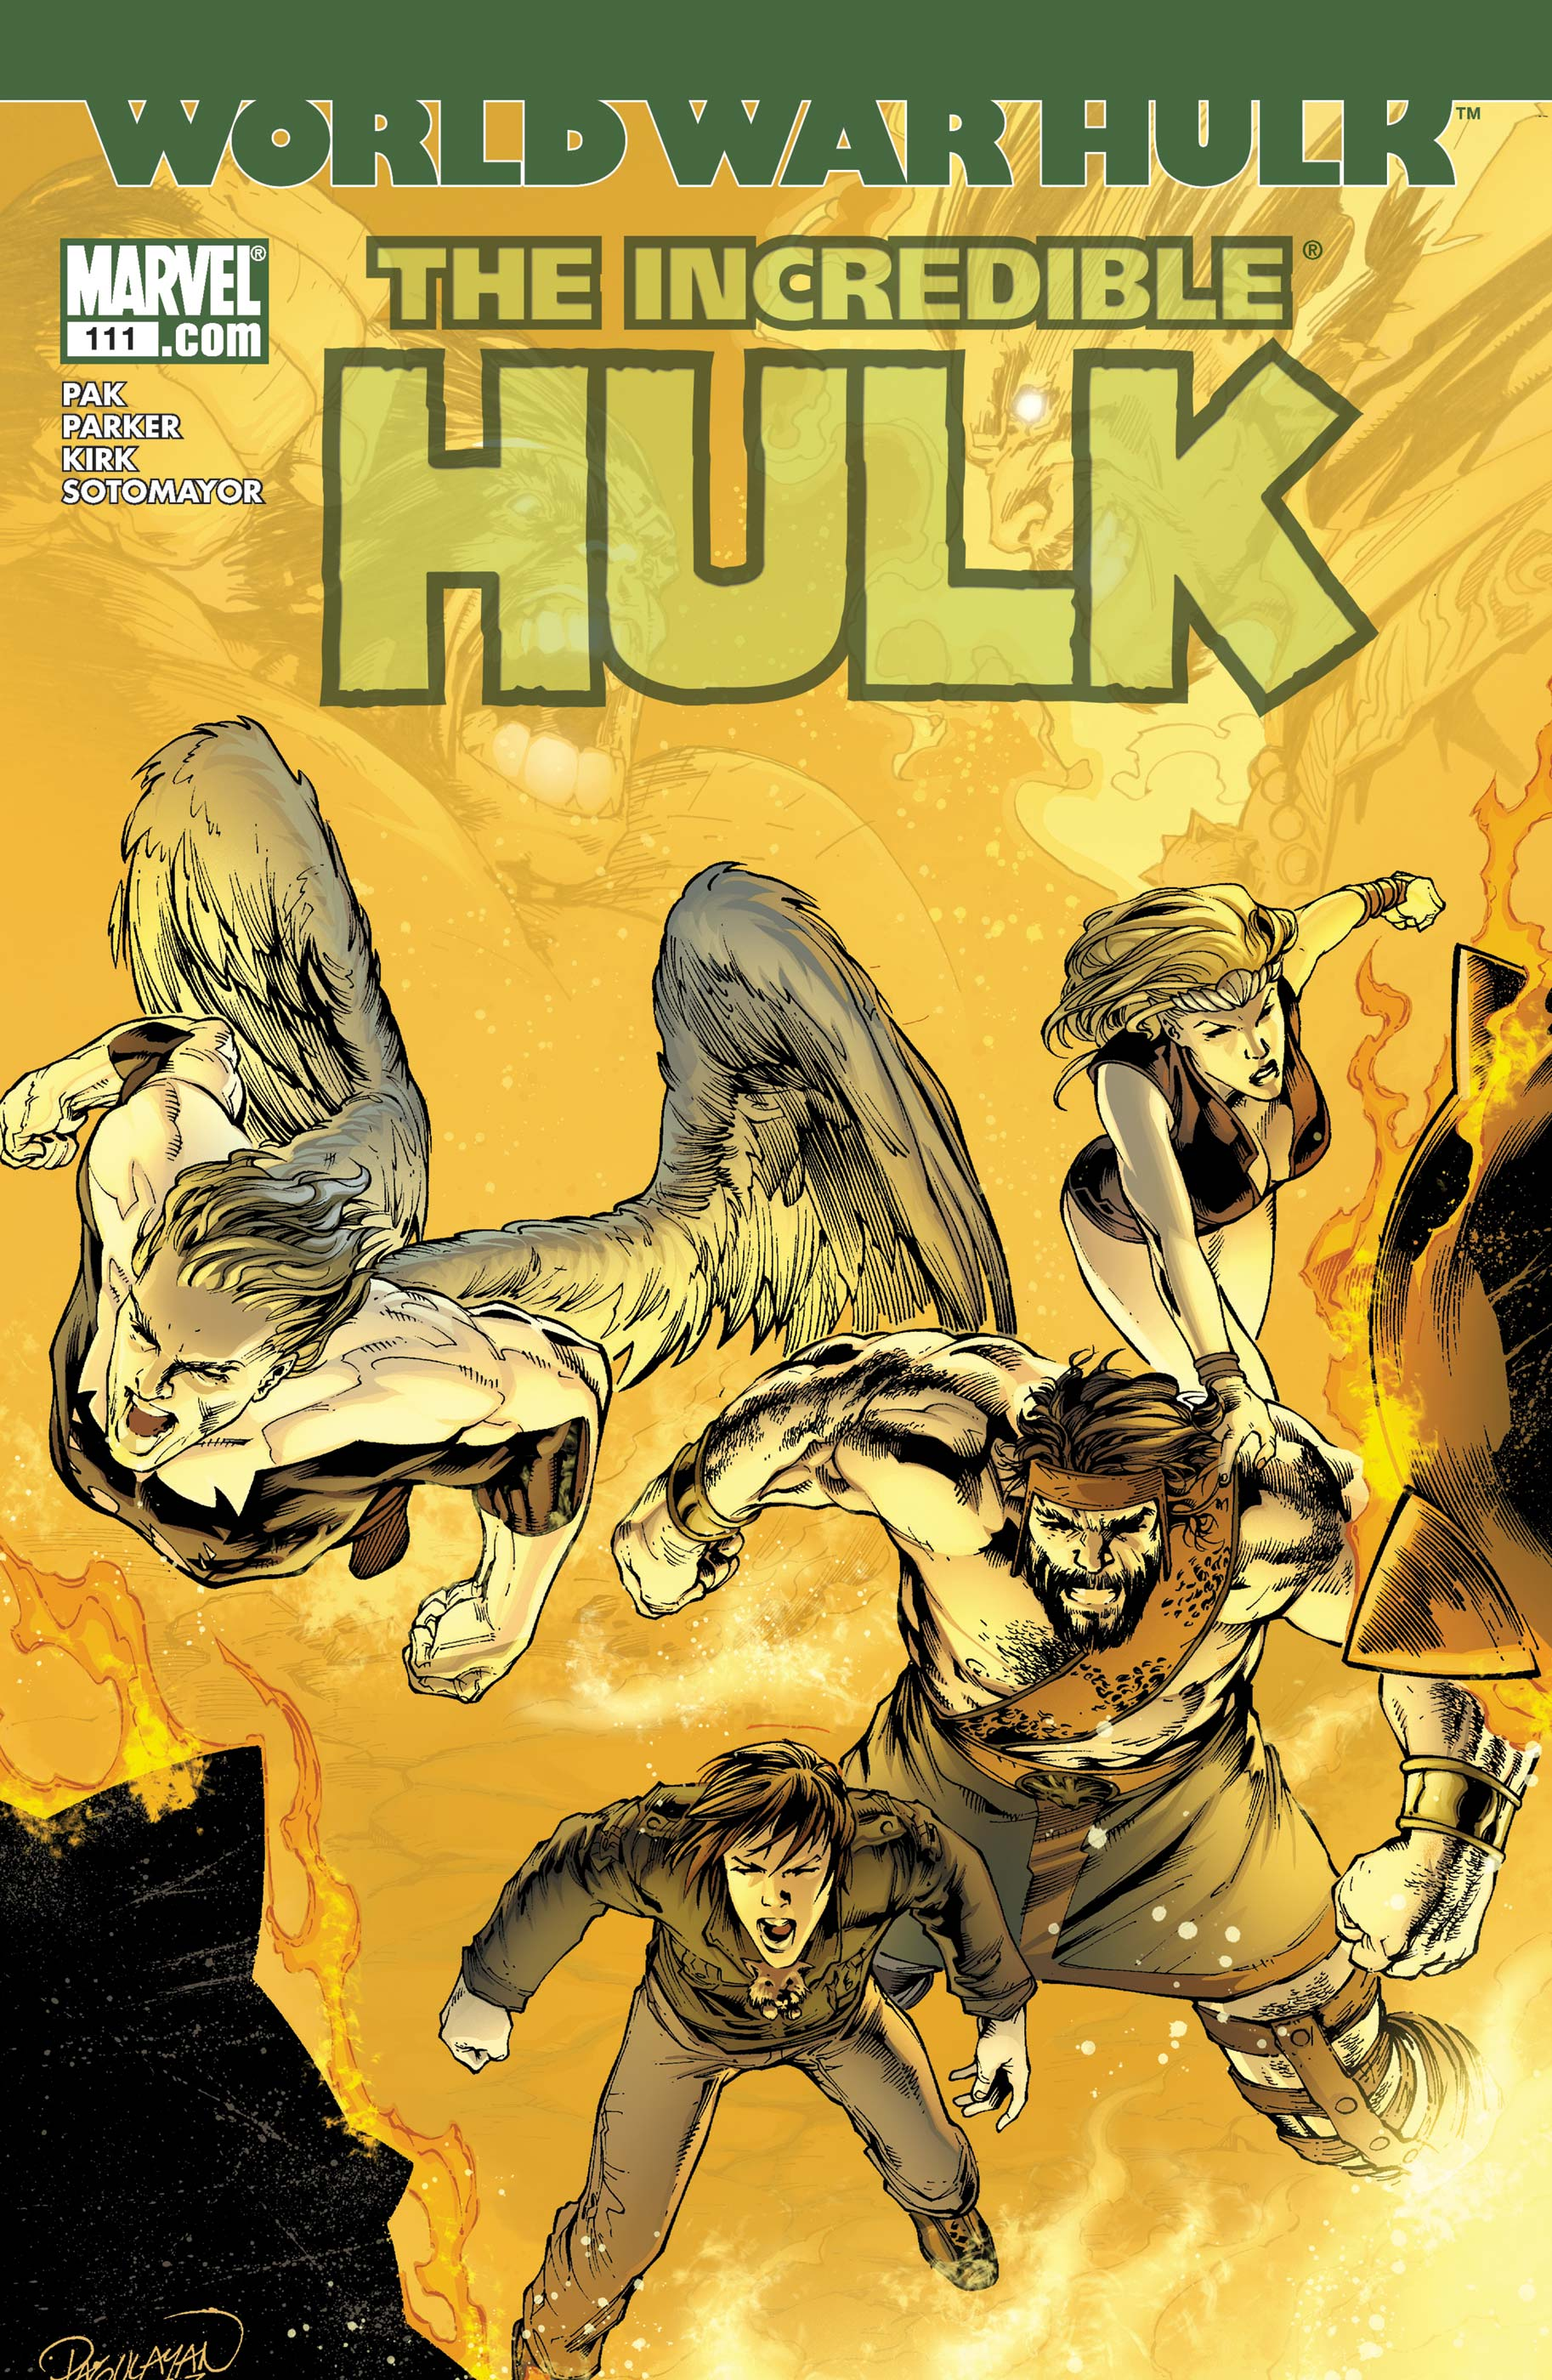 Incredible Hulk (1999) #111